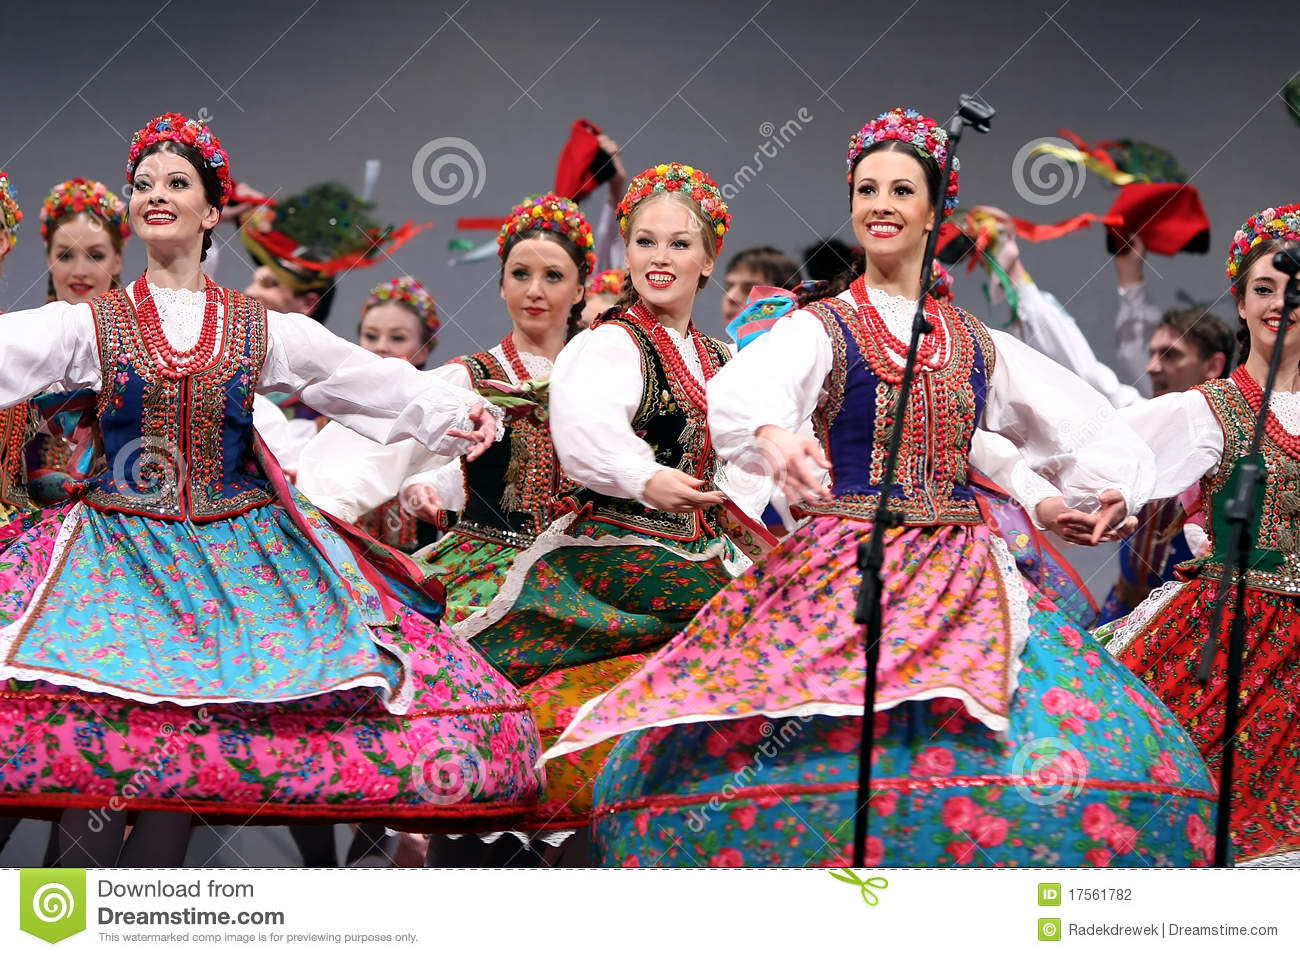 Mazowsze: The Music & Dance of Poland (PBS Special)